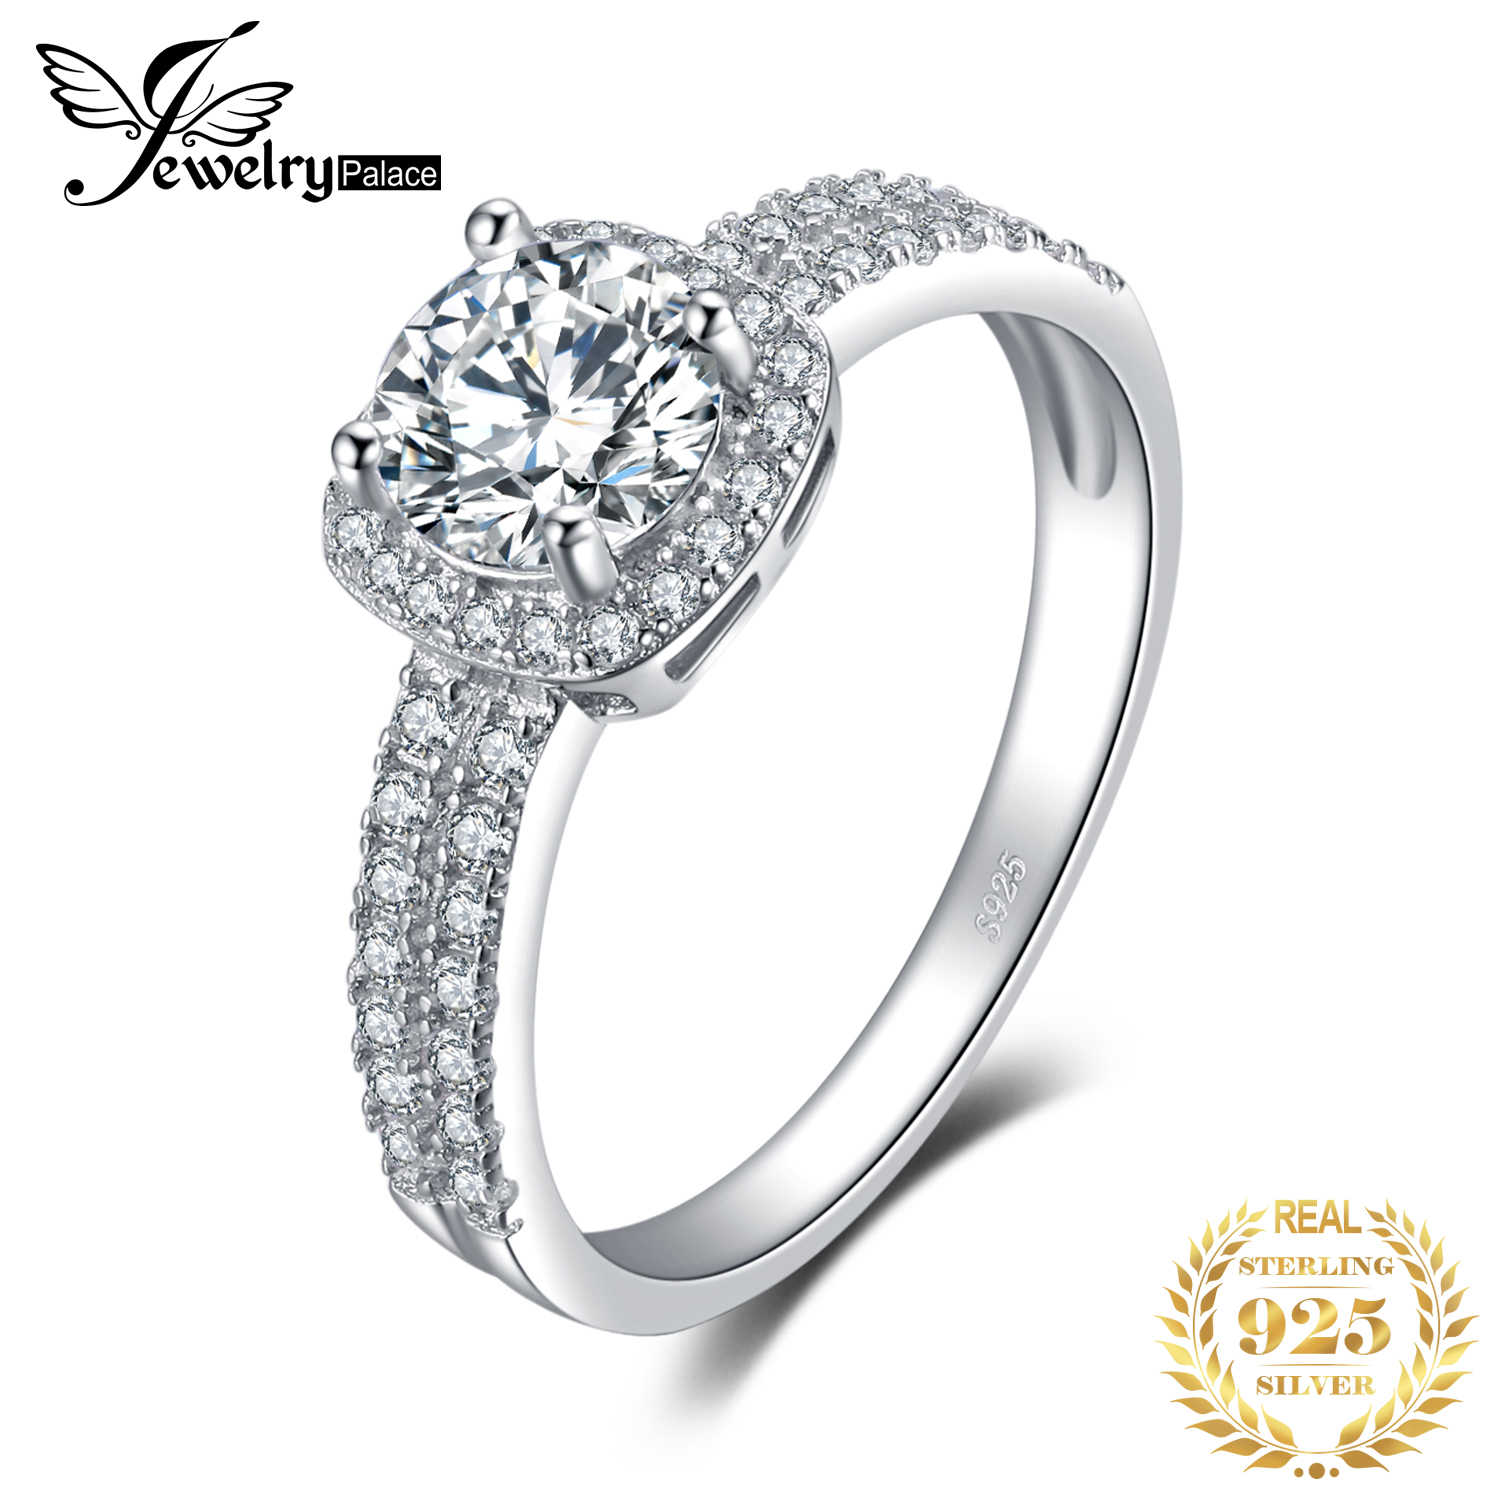 JewelryPalace Halo 1.1ct Round Cubic Zirconia Engagement Promise Ring Genuine 925 Sterling Silver Ring For Women Fashion Jewelry